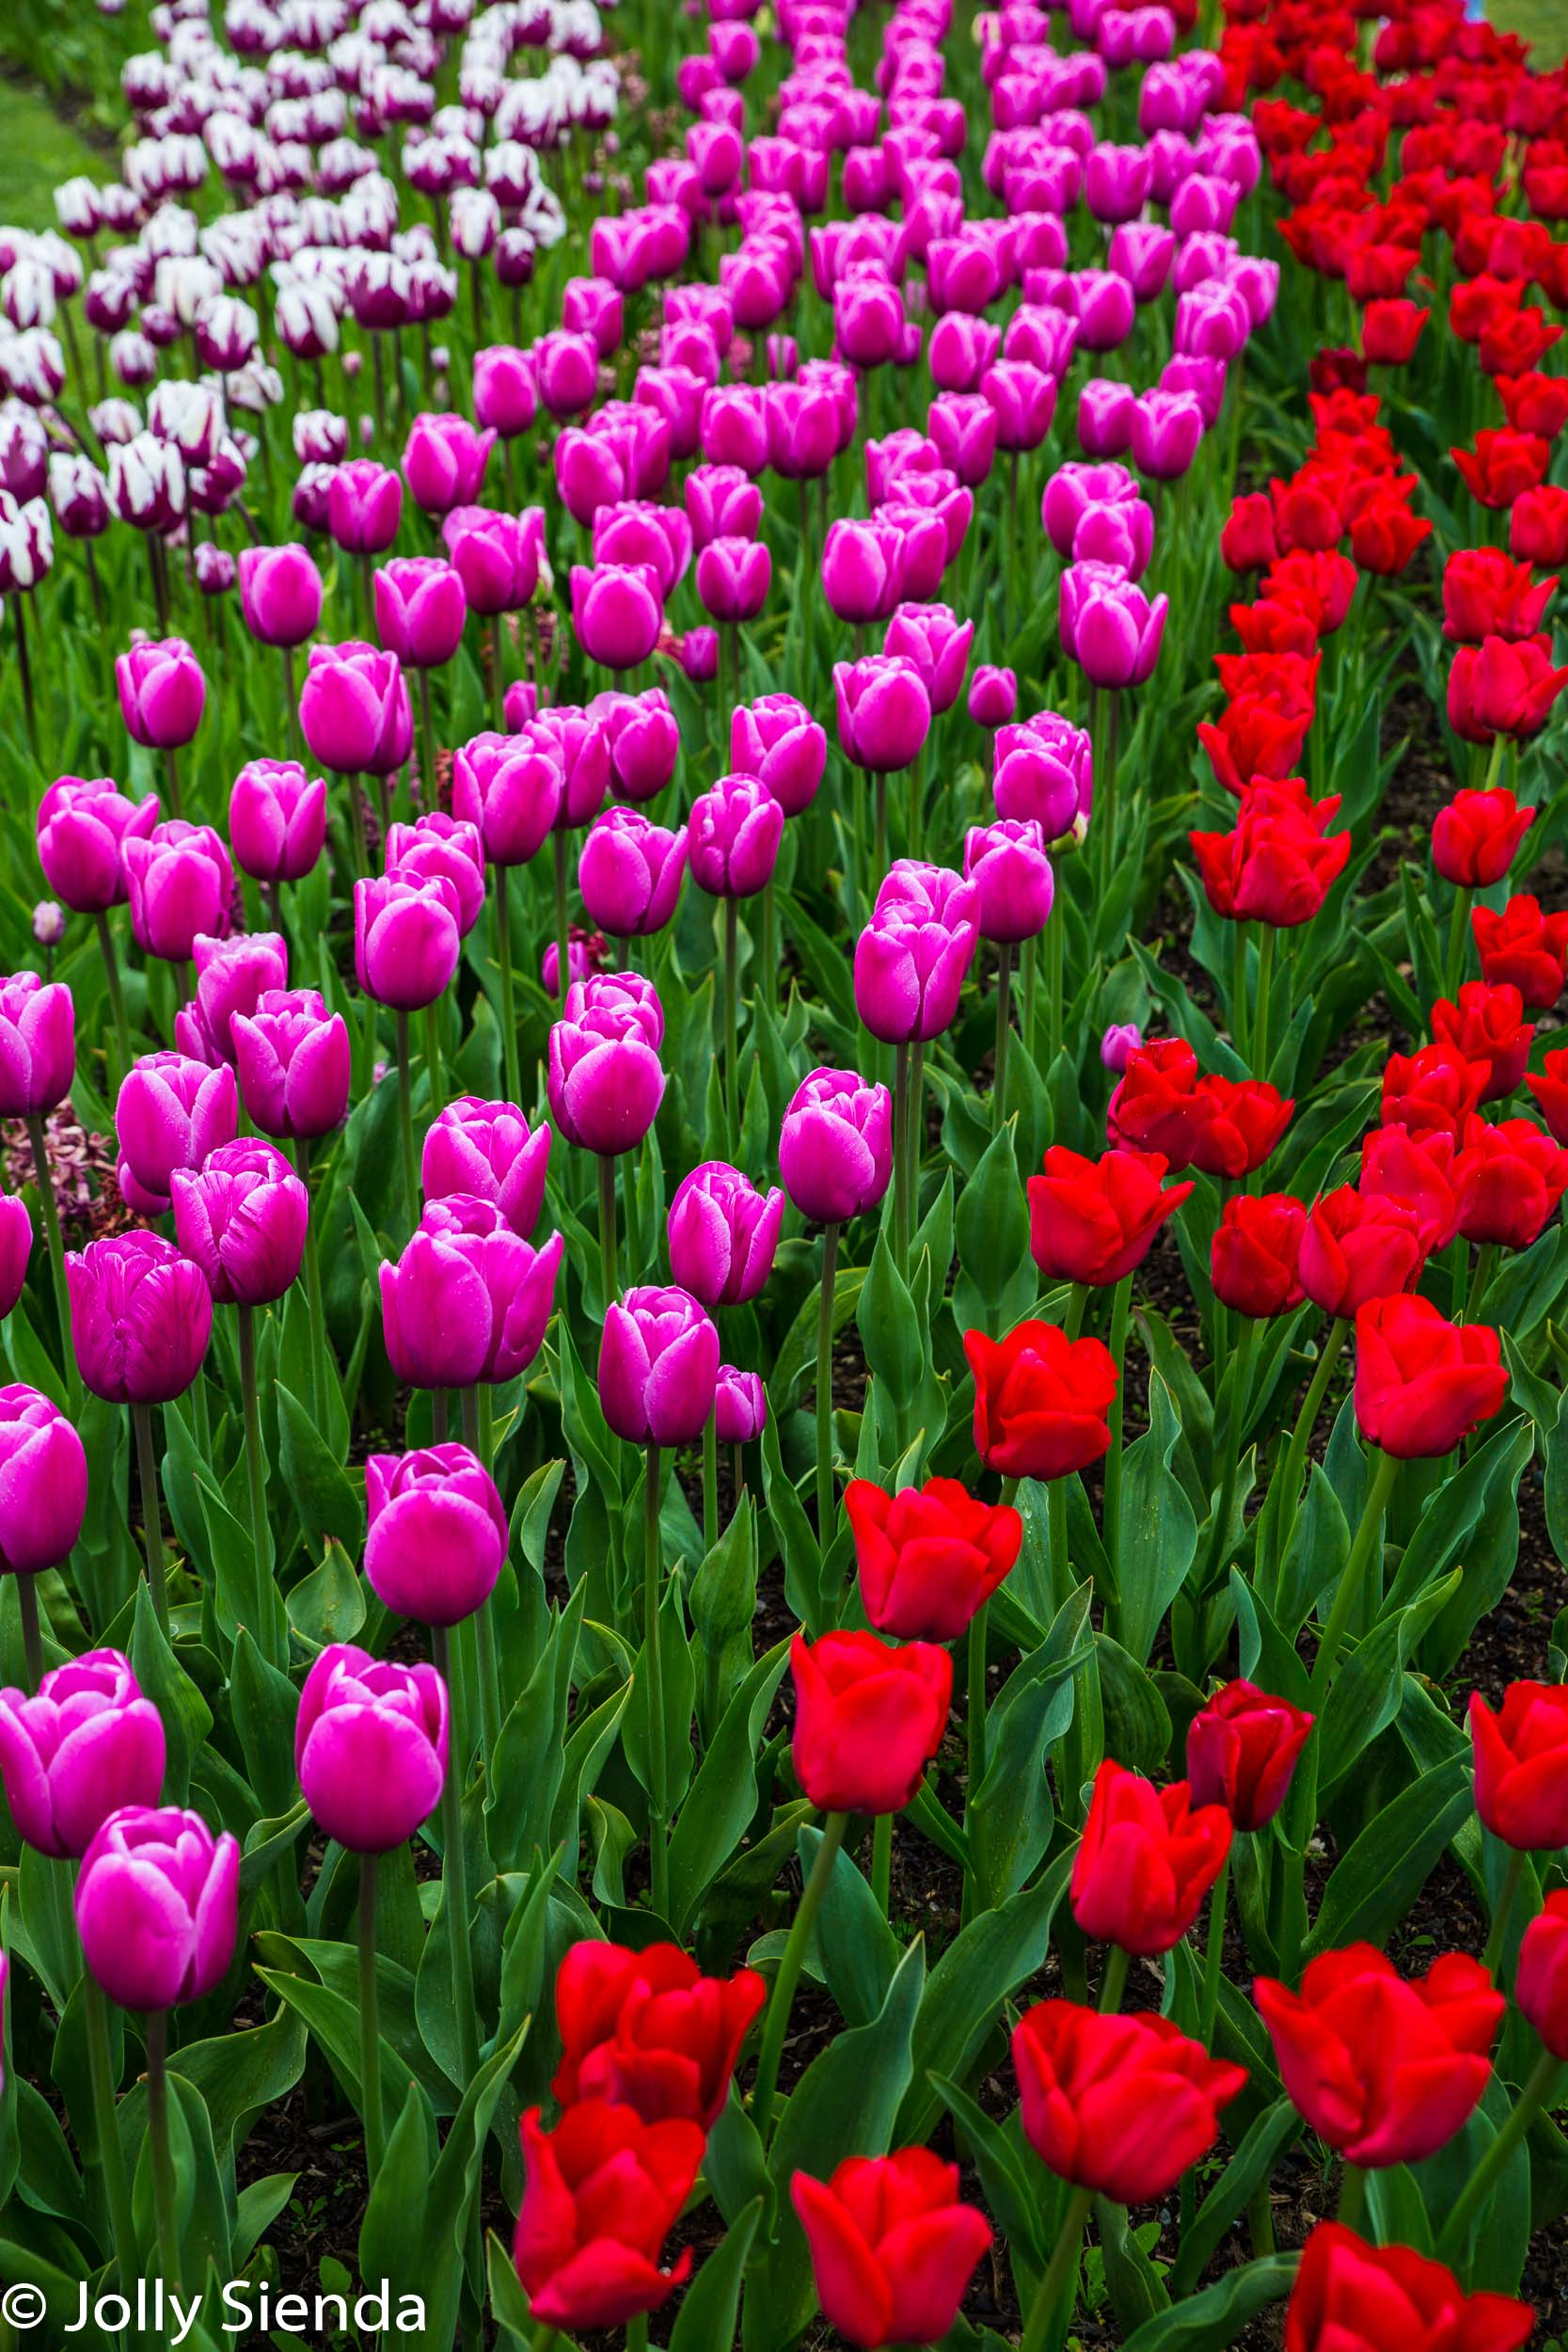 Rows of multi-colored purple and red tulips in the green garden